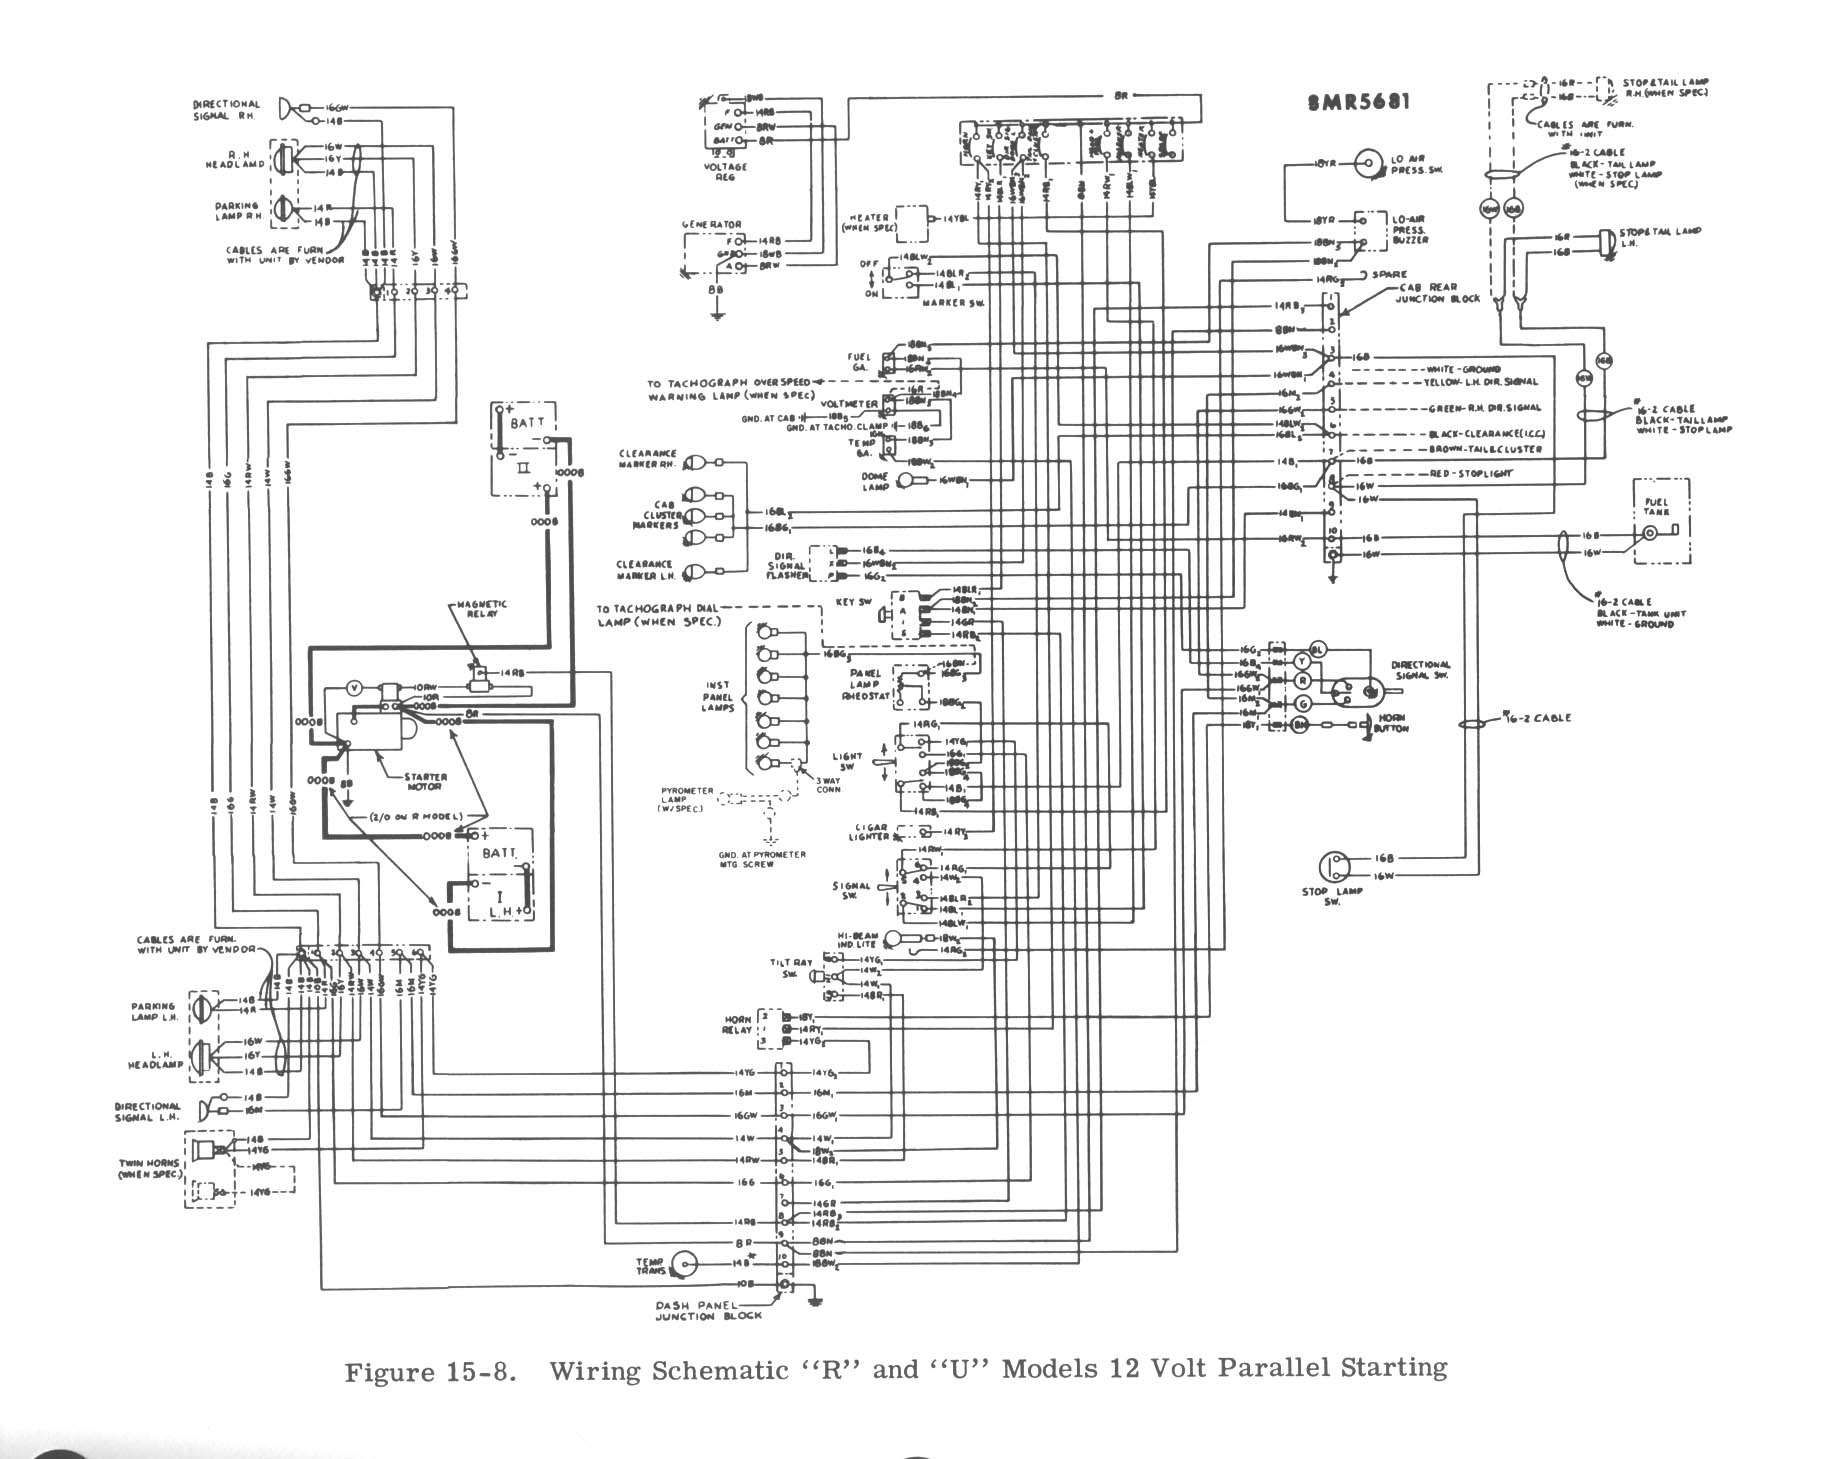 Mack Wiring Schematic - Wiring Diagrams on mack transmission diagram, mack motor diagram, mack fuse diagram, mack parts diagram, mack rear end diagram, mack steering diagram, mack fuel system diagram, mack engine diagram, mack suspension, mack hvac diagram, mack relay diagram, mack pump diagram,